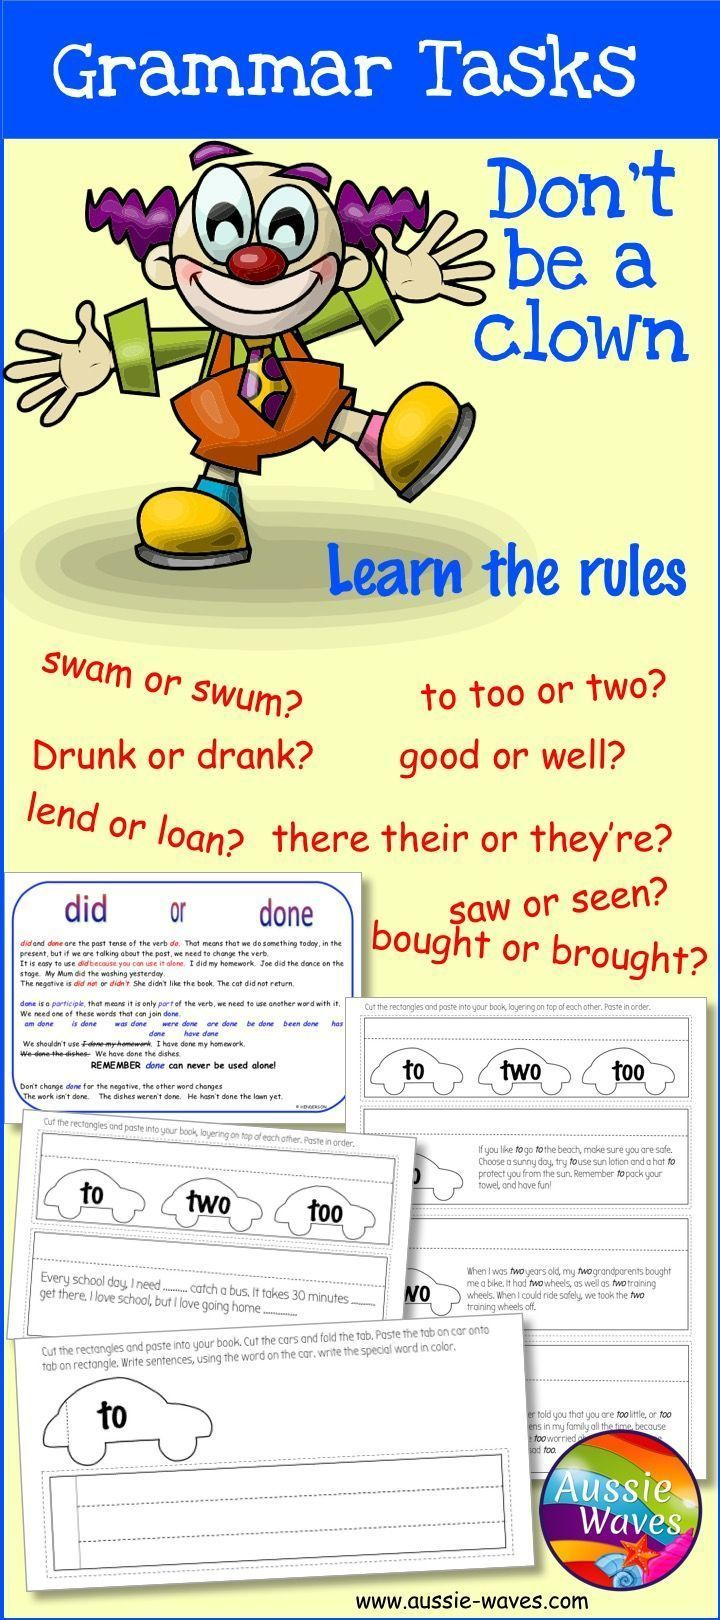 Posters And Task To Teach Students Correct Grammar 20 Common Grammar Errors With Posters And Workshe Grammar Lessons Common Grammar Mistakes Teaching Grammar [ 1620 x 720 Pixel ]